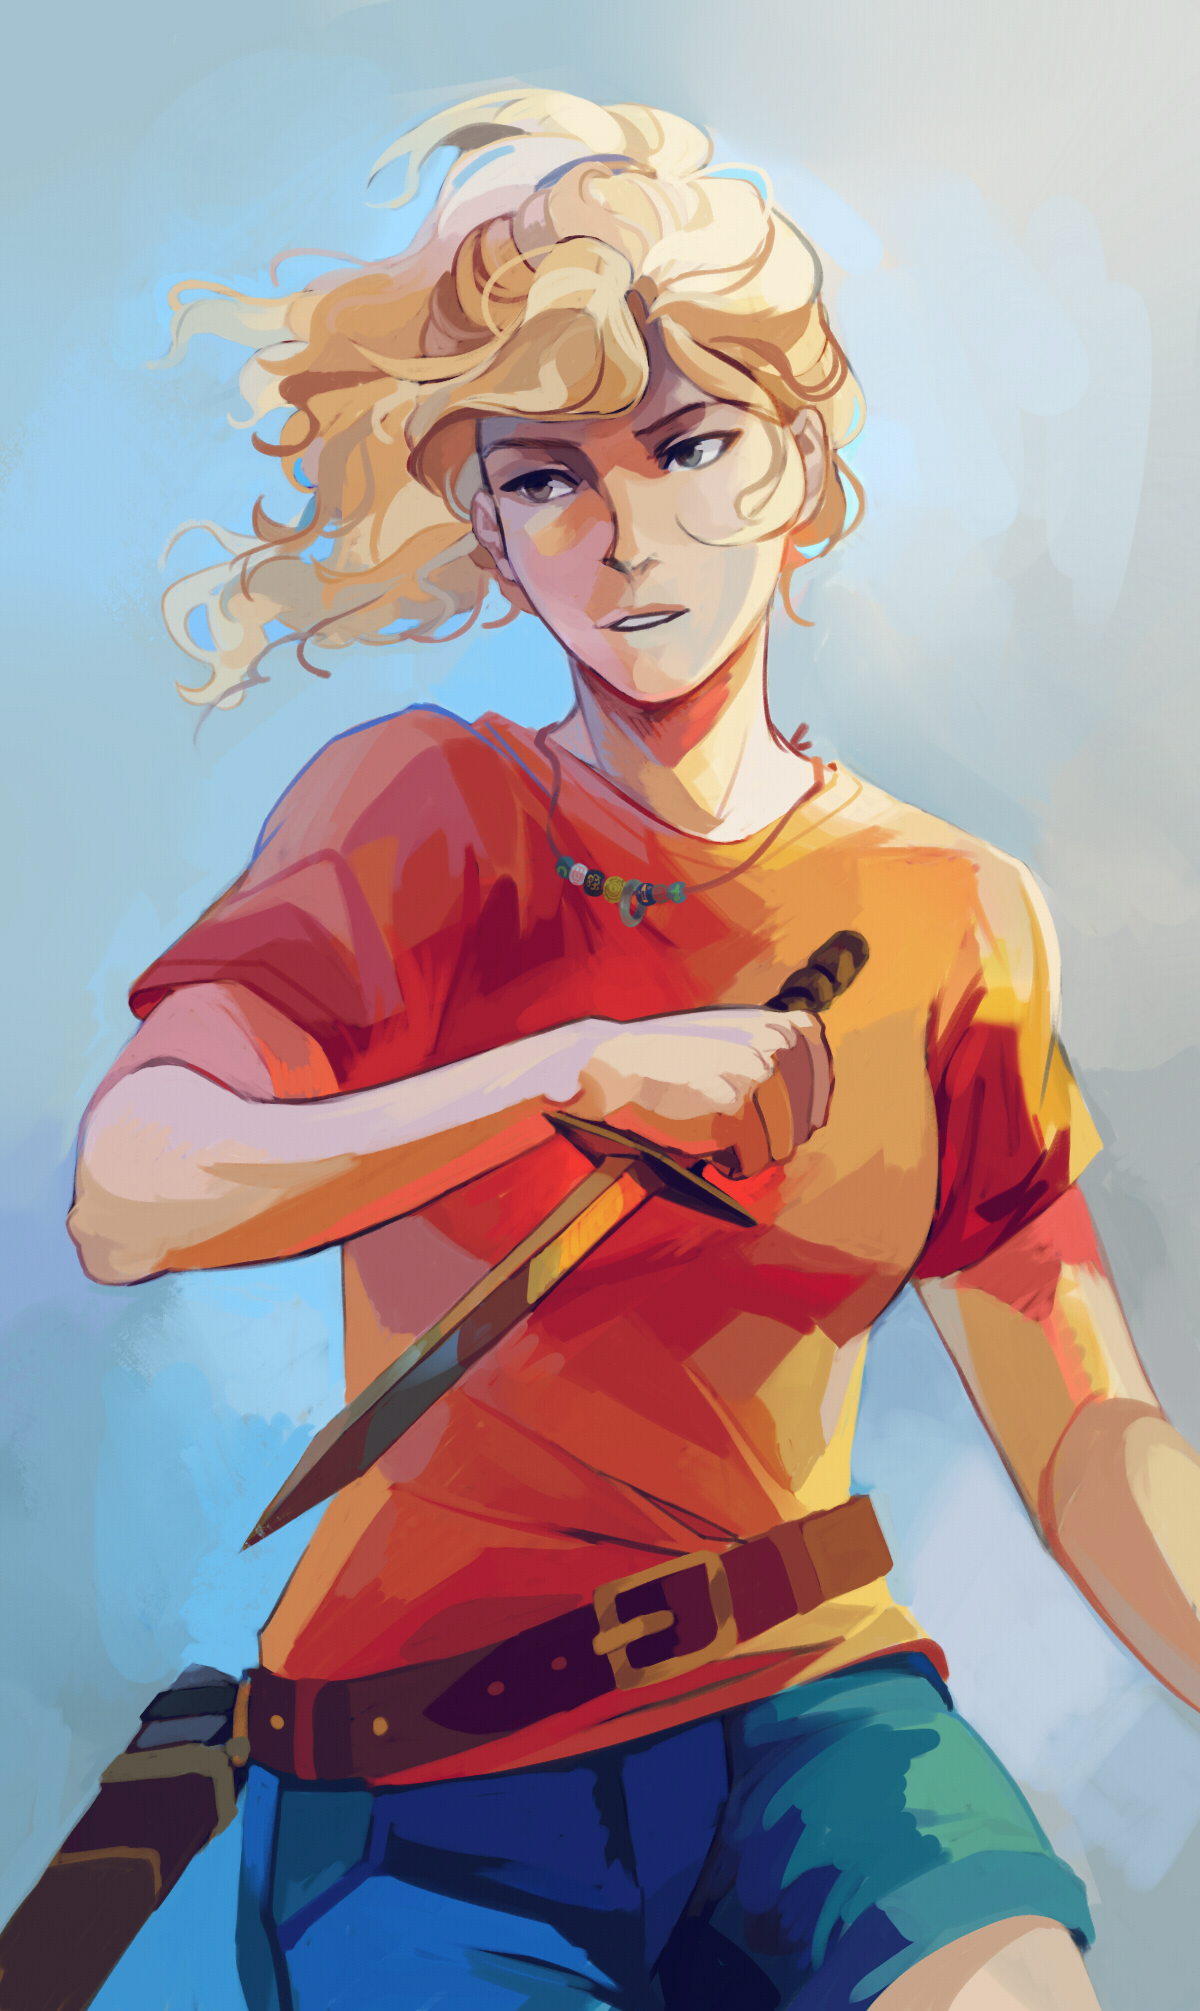 Annabeth Chase | Riordan Wiki | FANDOM powered by Wikia